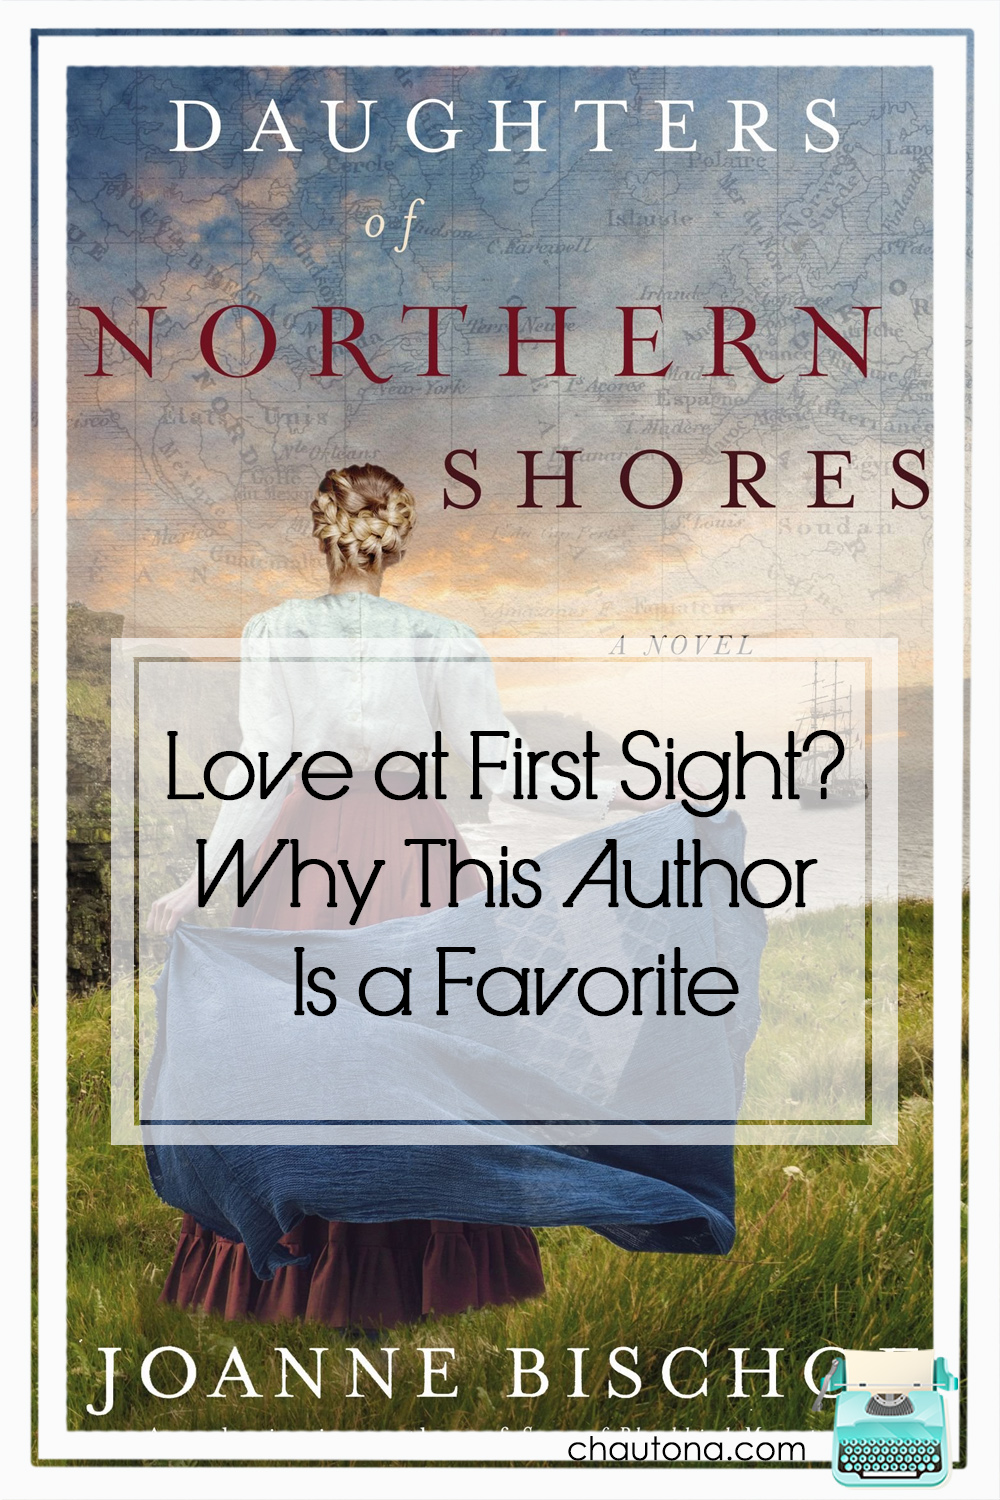 daughters of northern shores review- Love at First Sight? Why This Author is a Favorite